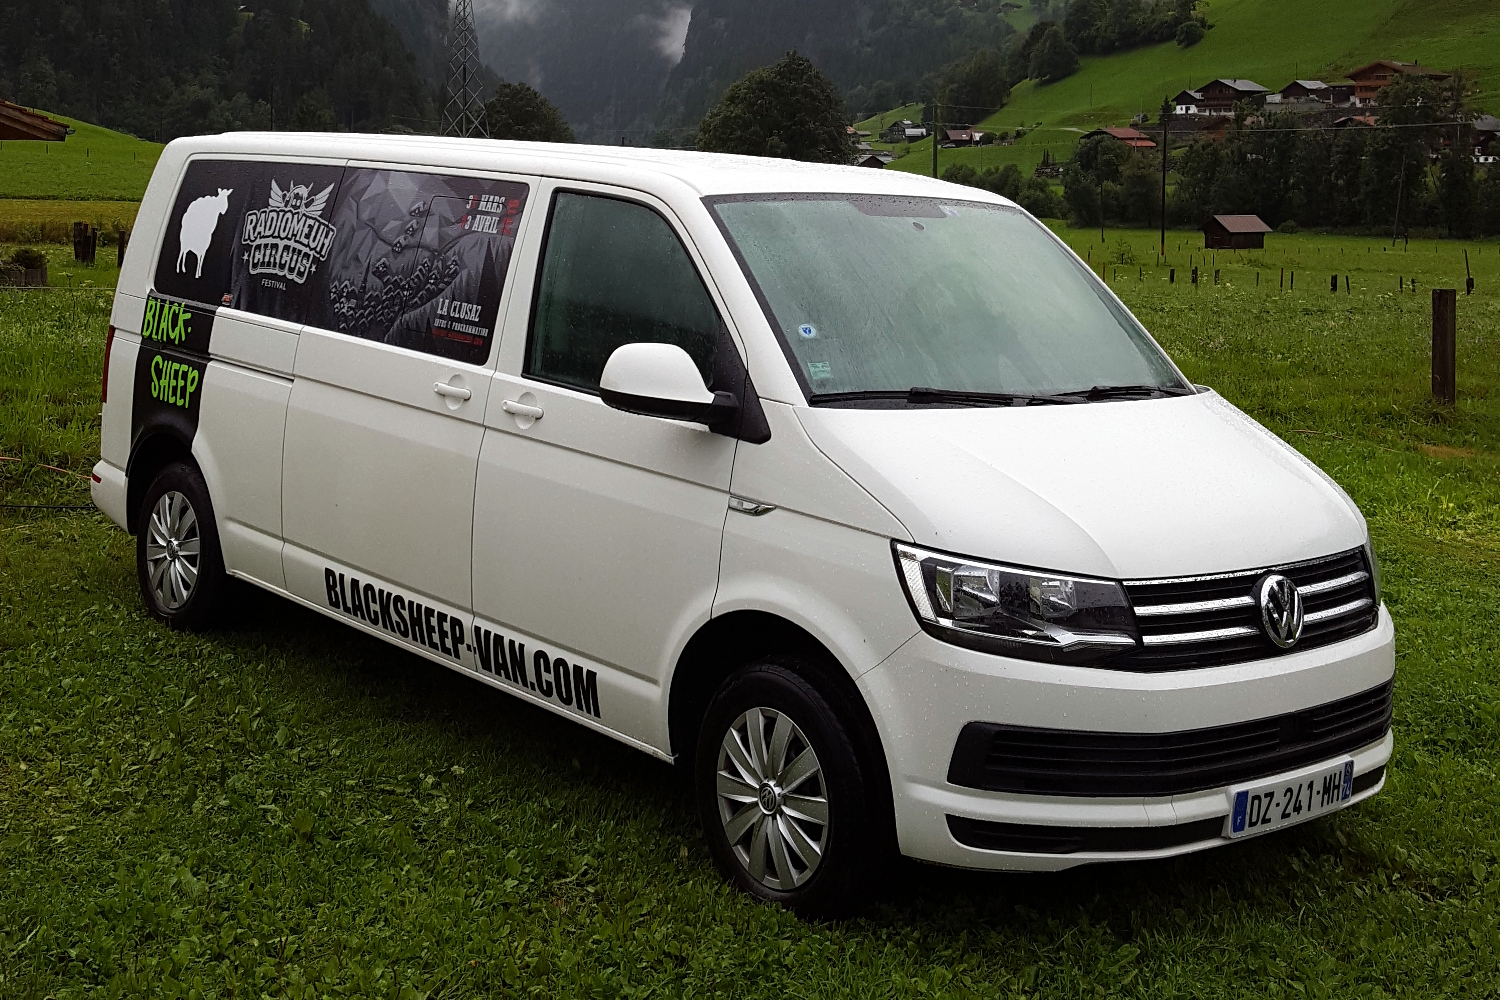 Blacksheep campervan at Camping Eigernordwand in Grindelwald, Switzerland